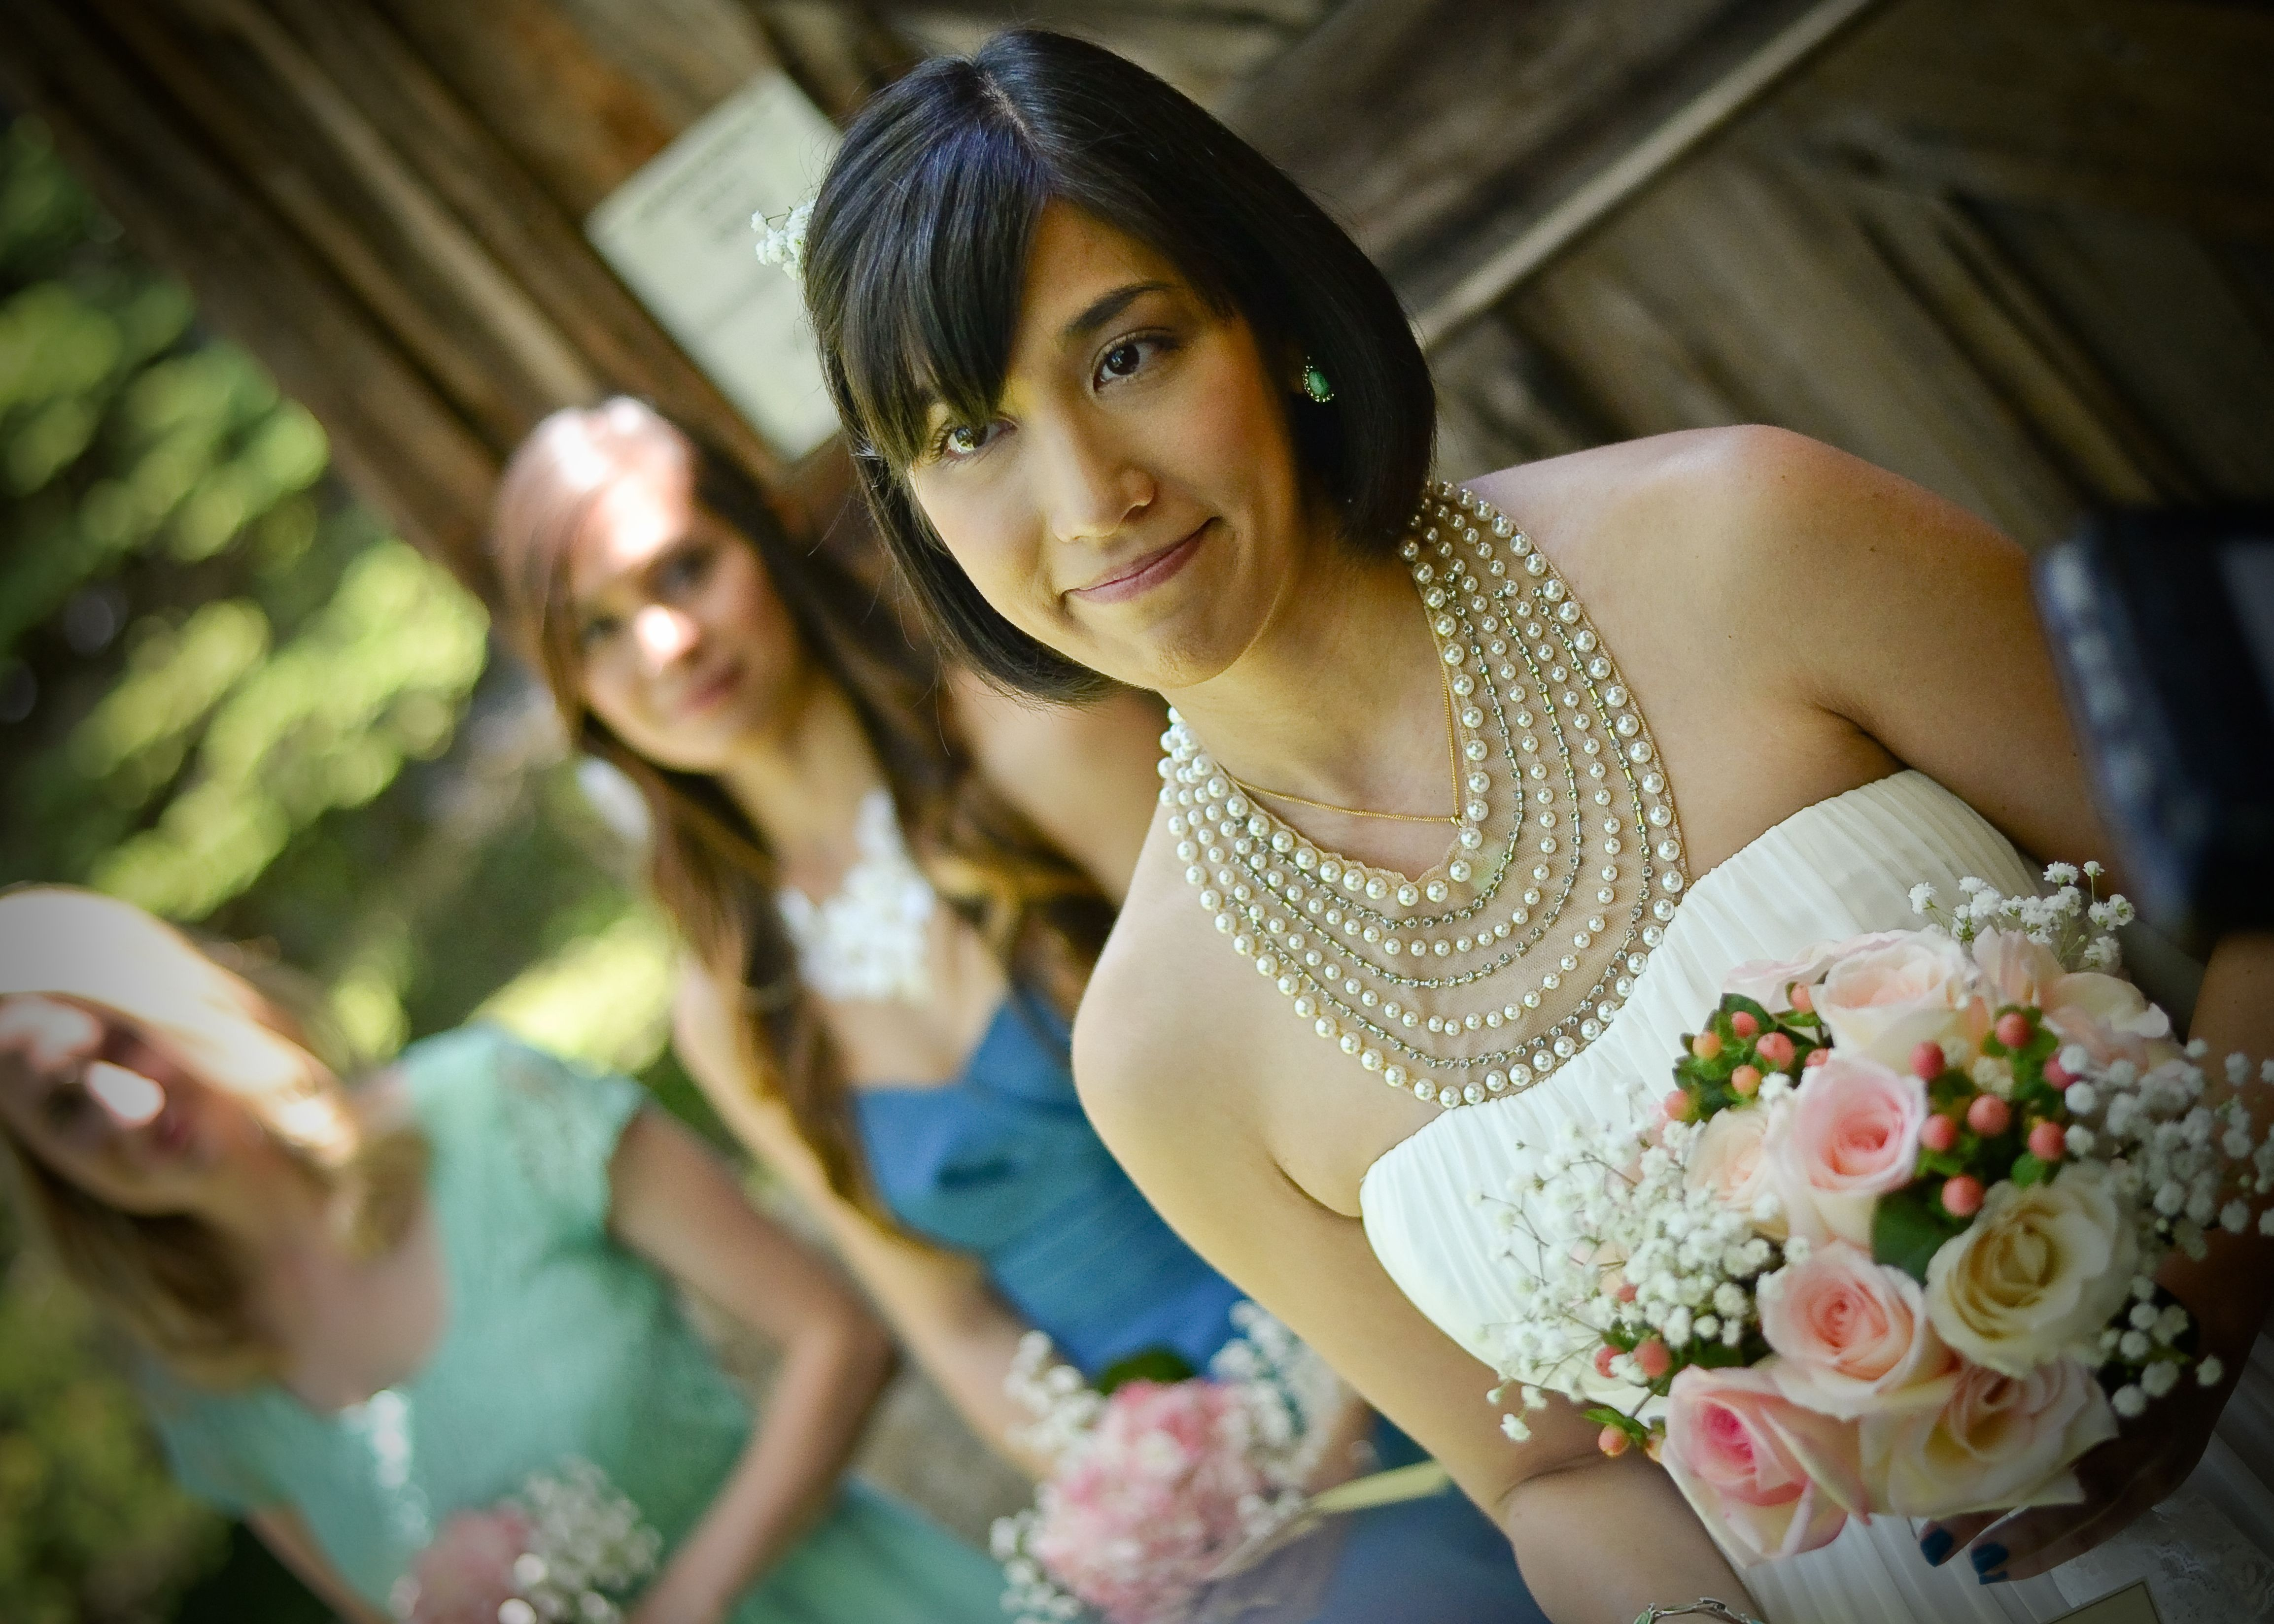 Capturing the bride during a recent wedding at Baldwin's ...